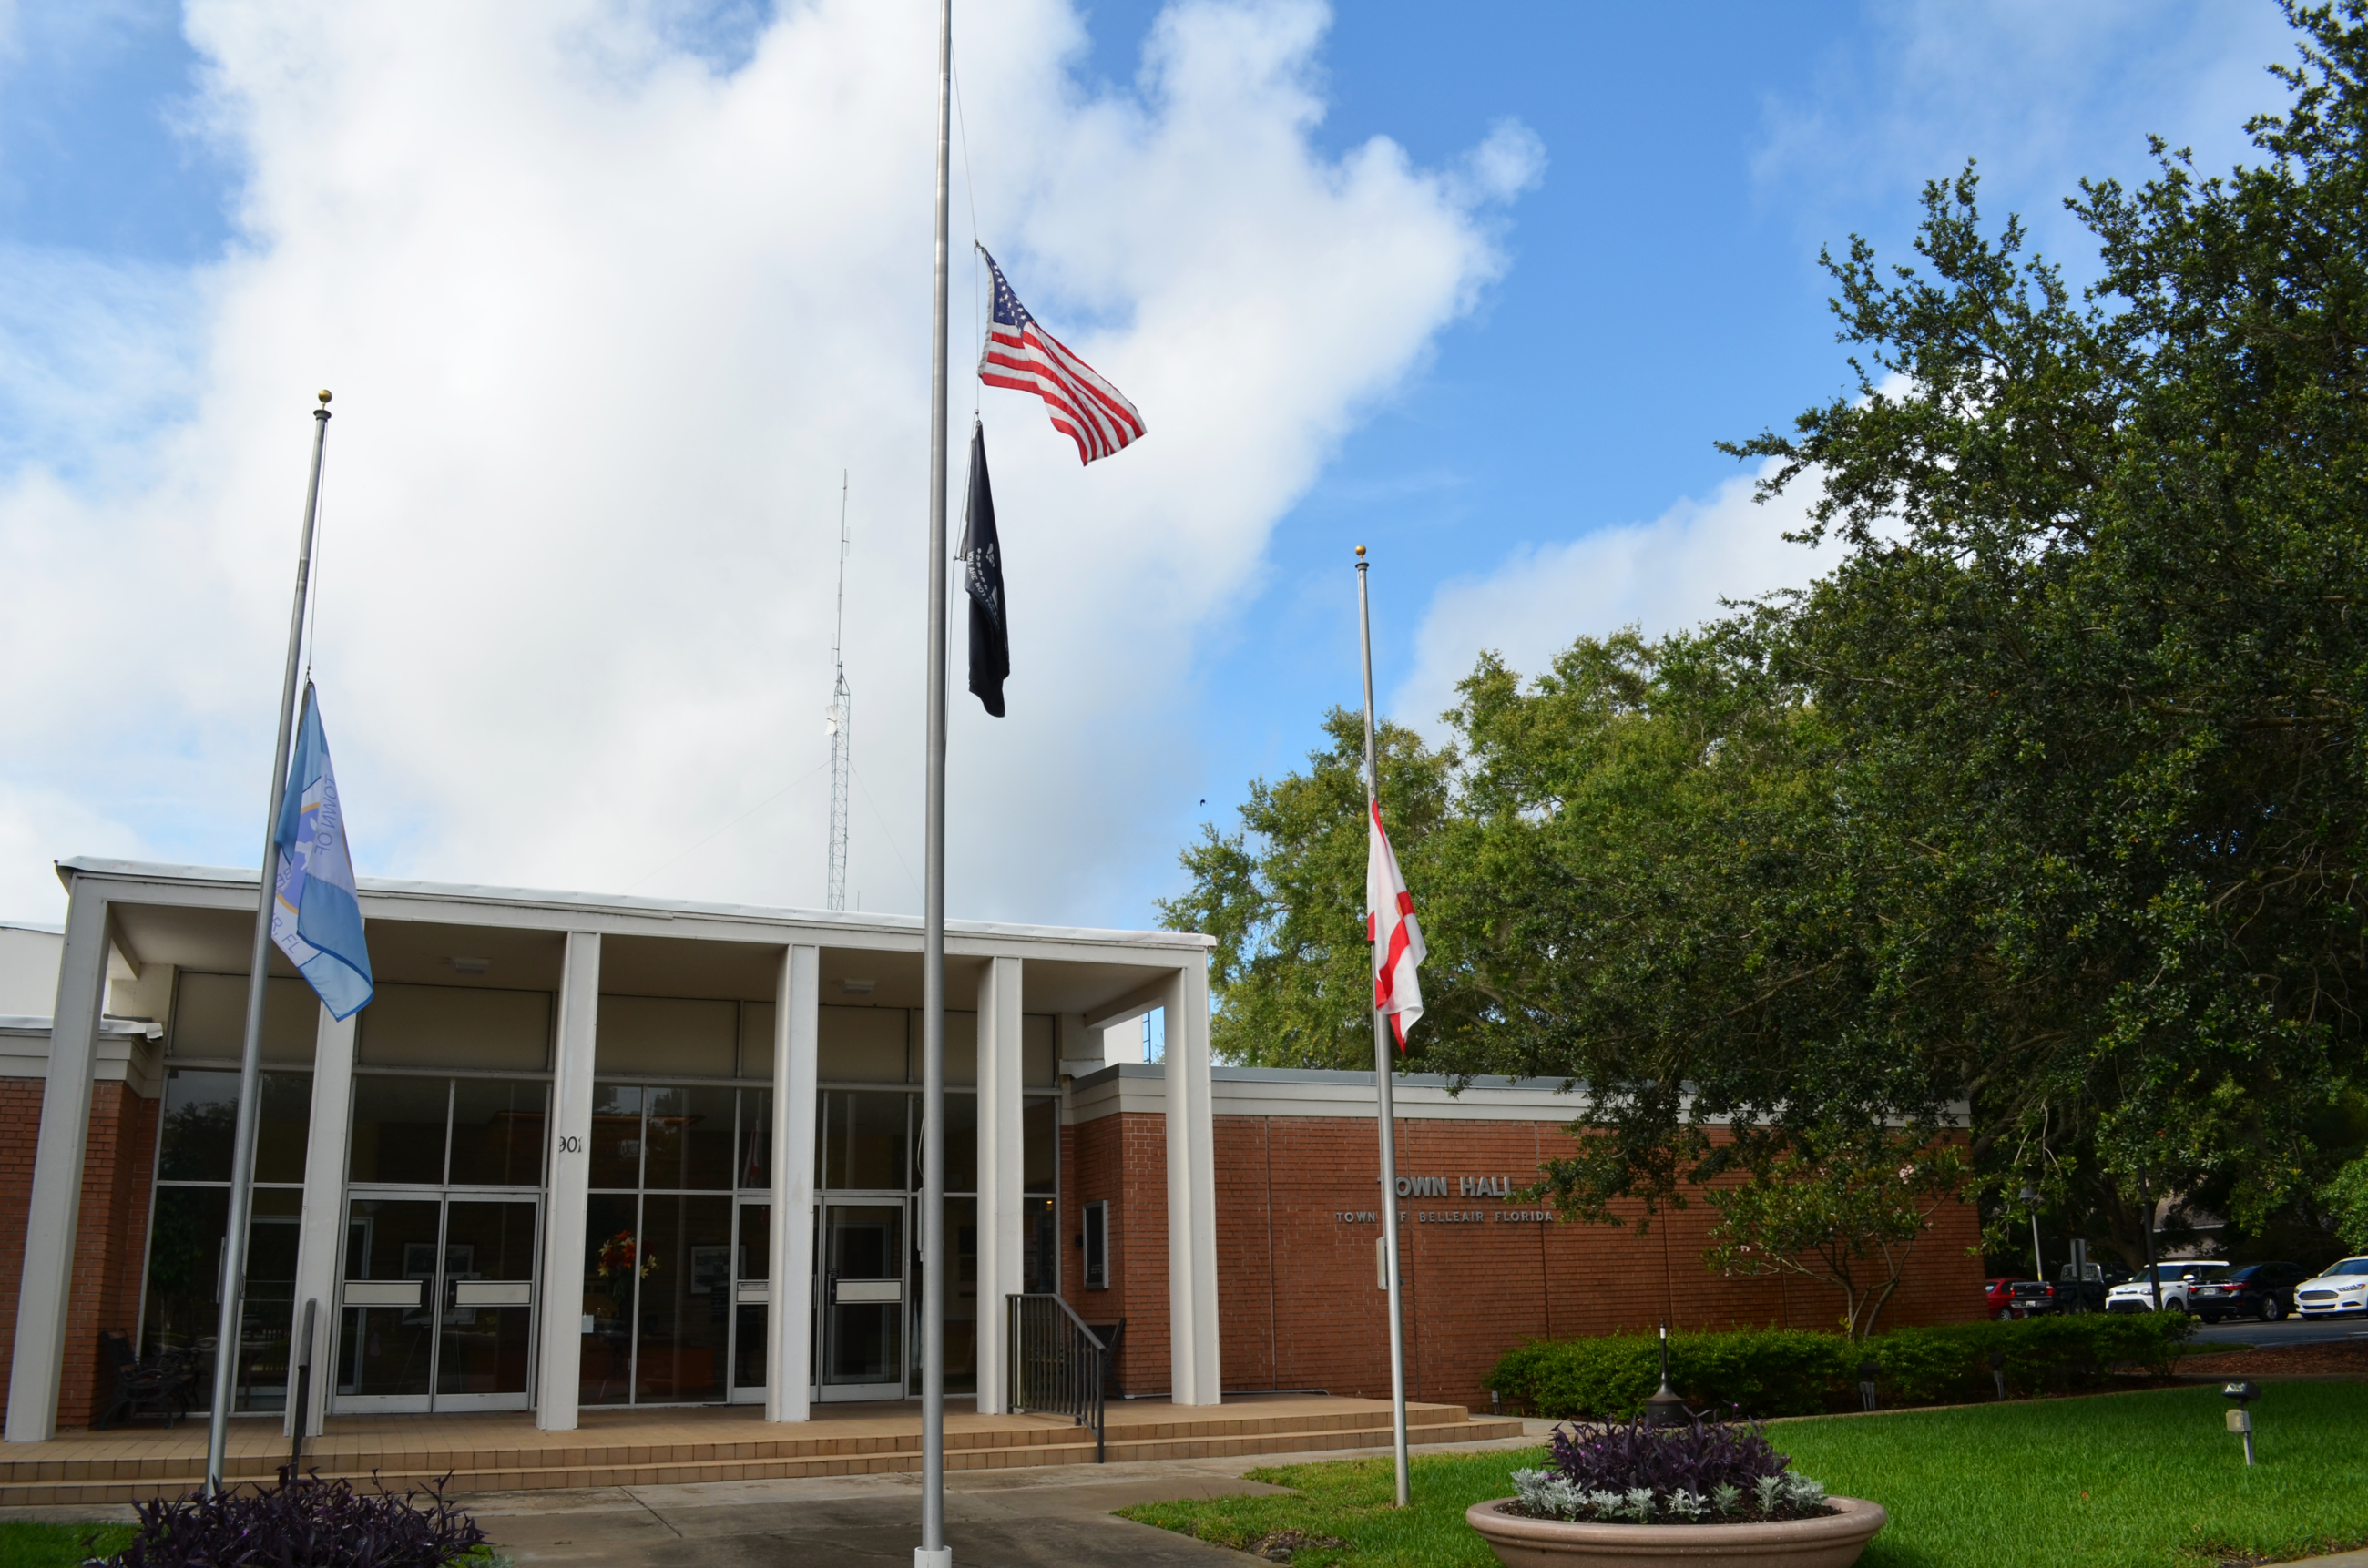 The front of Belleair's Town Hall building with flags at half staff.